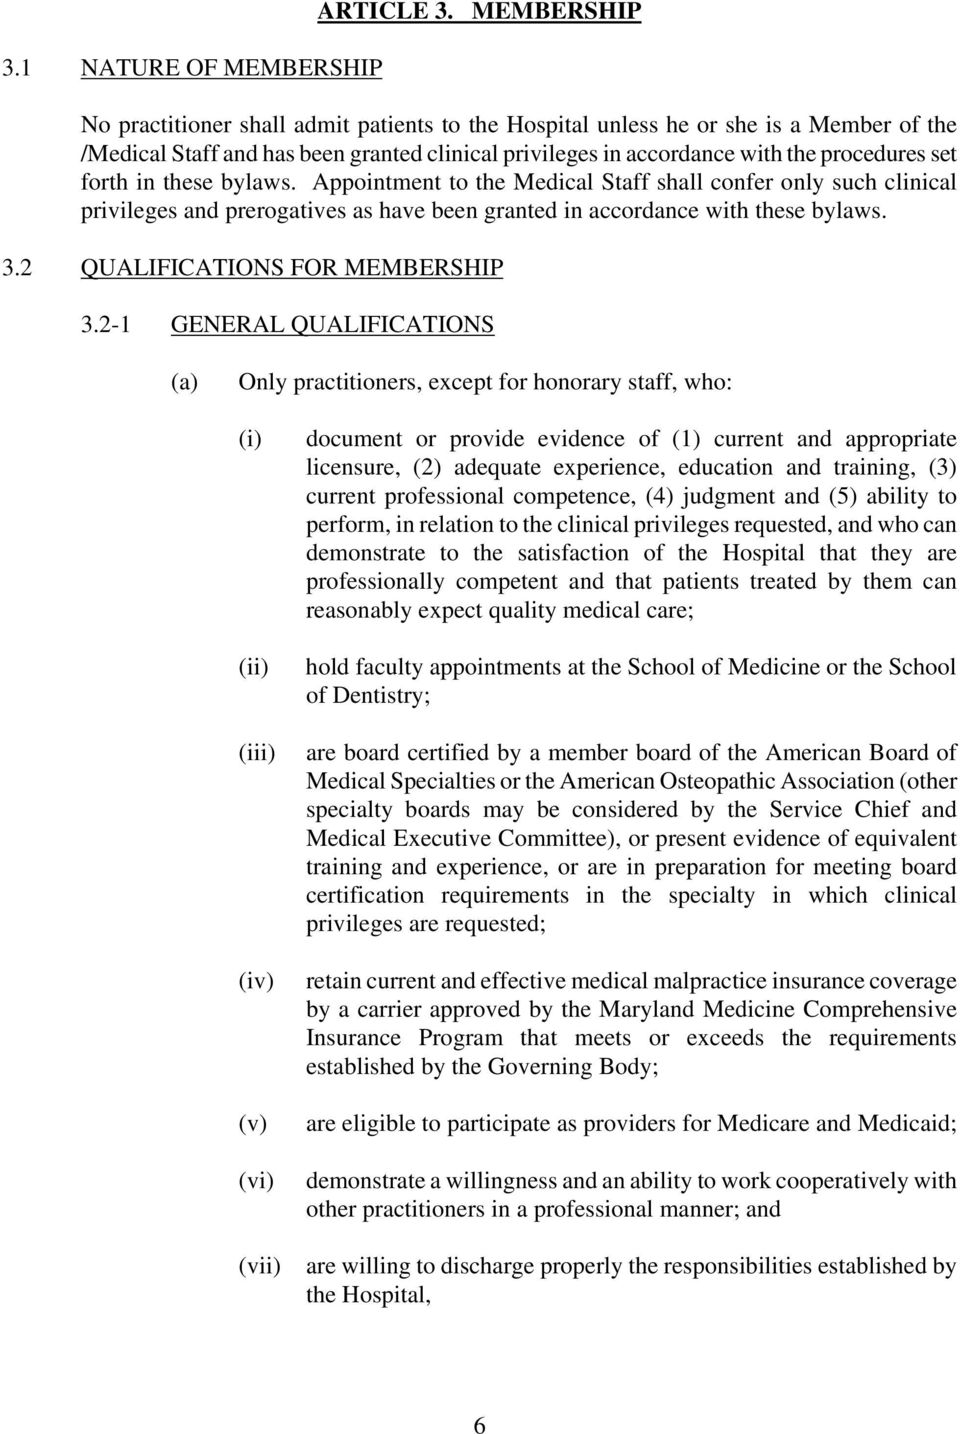 in these bylaws. Appointment to the Medical Staff shall confer only such clinical privileges and prerogatives as have been granted in accordance with these bylaws. 3.2 QUALIFICATIONS FOR MEMBERSHIP 3.